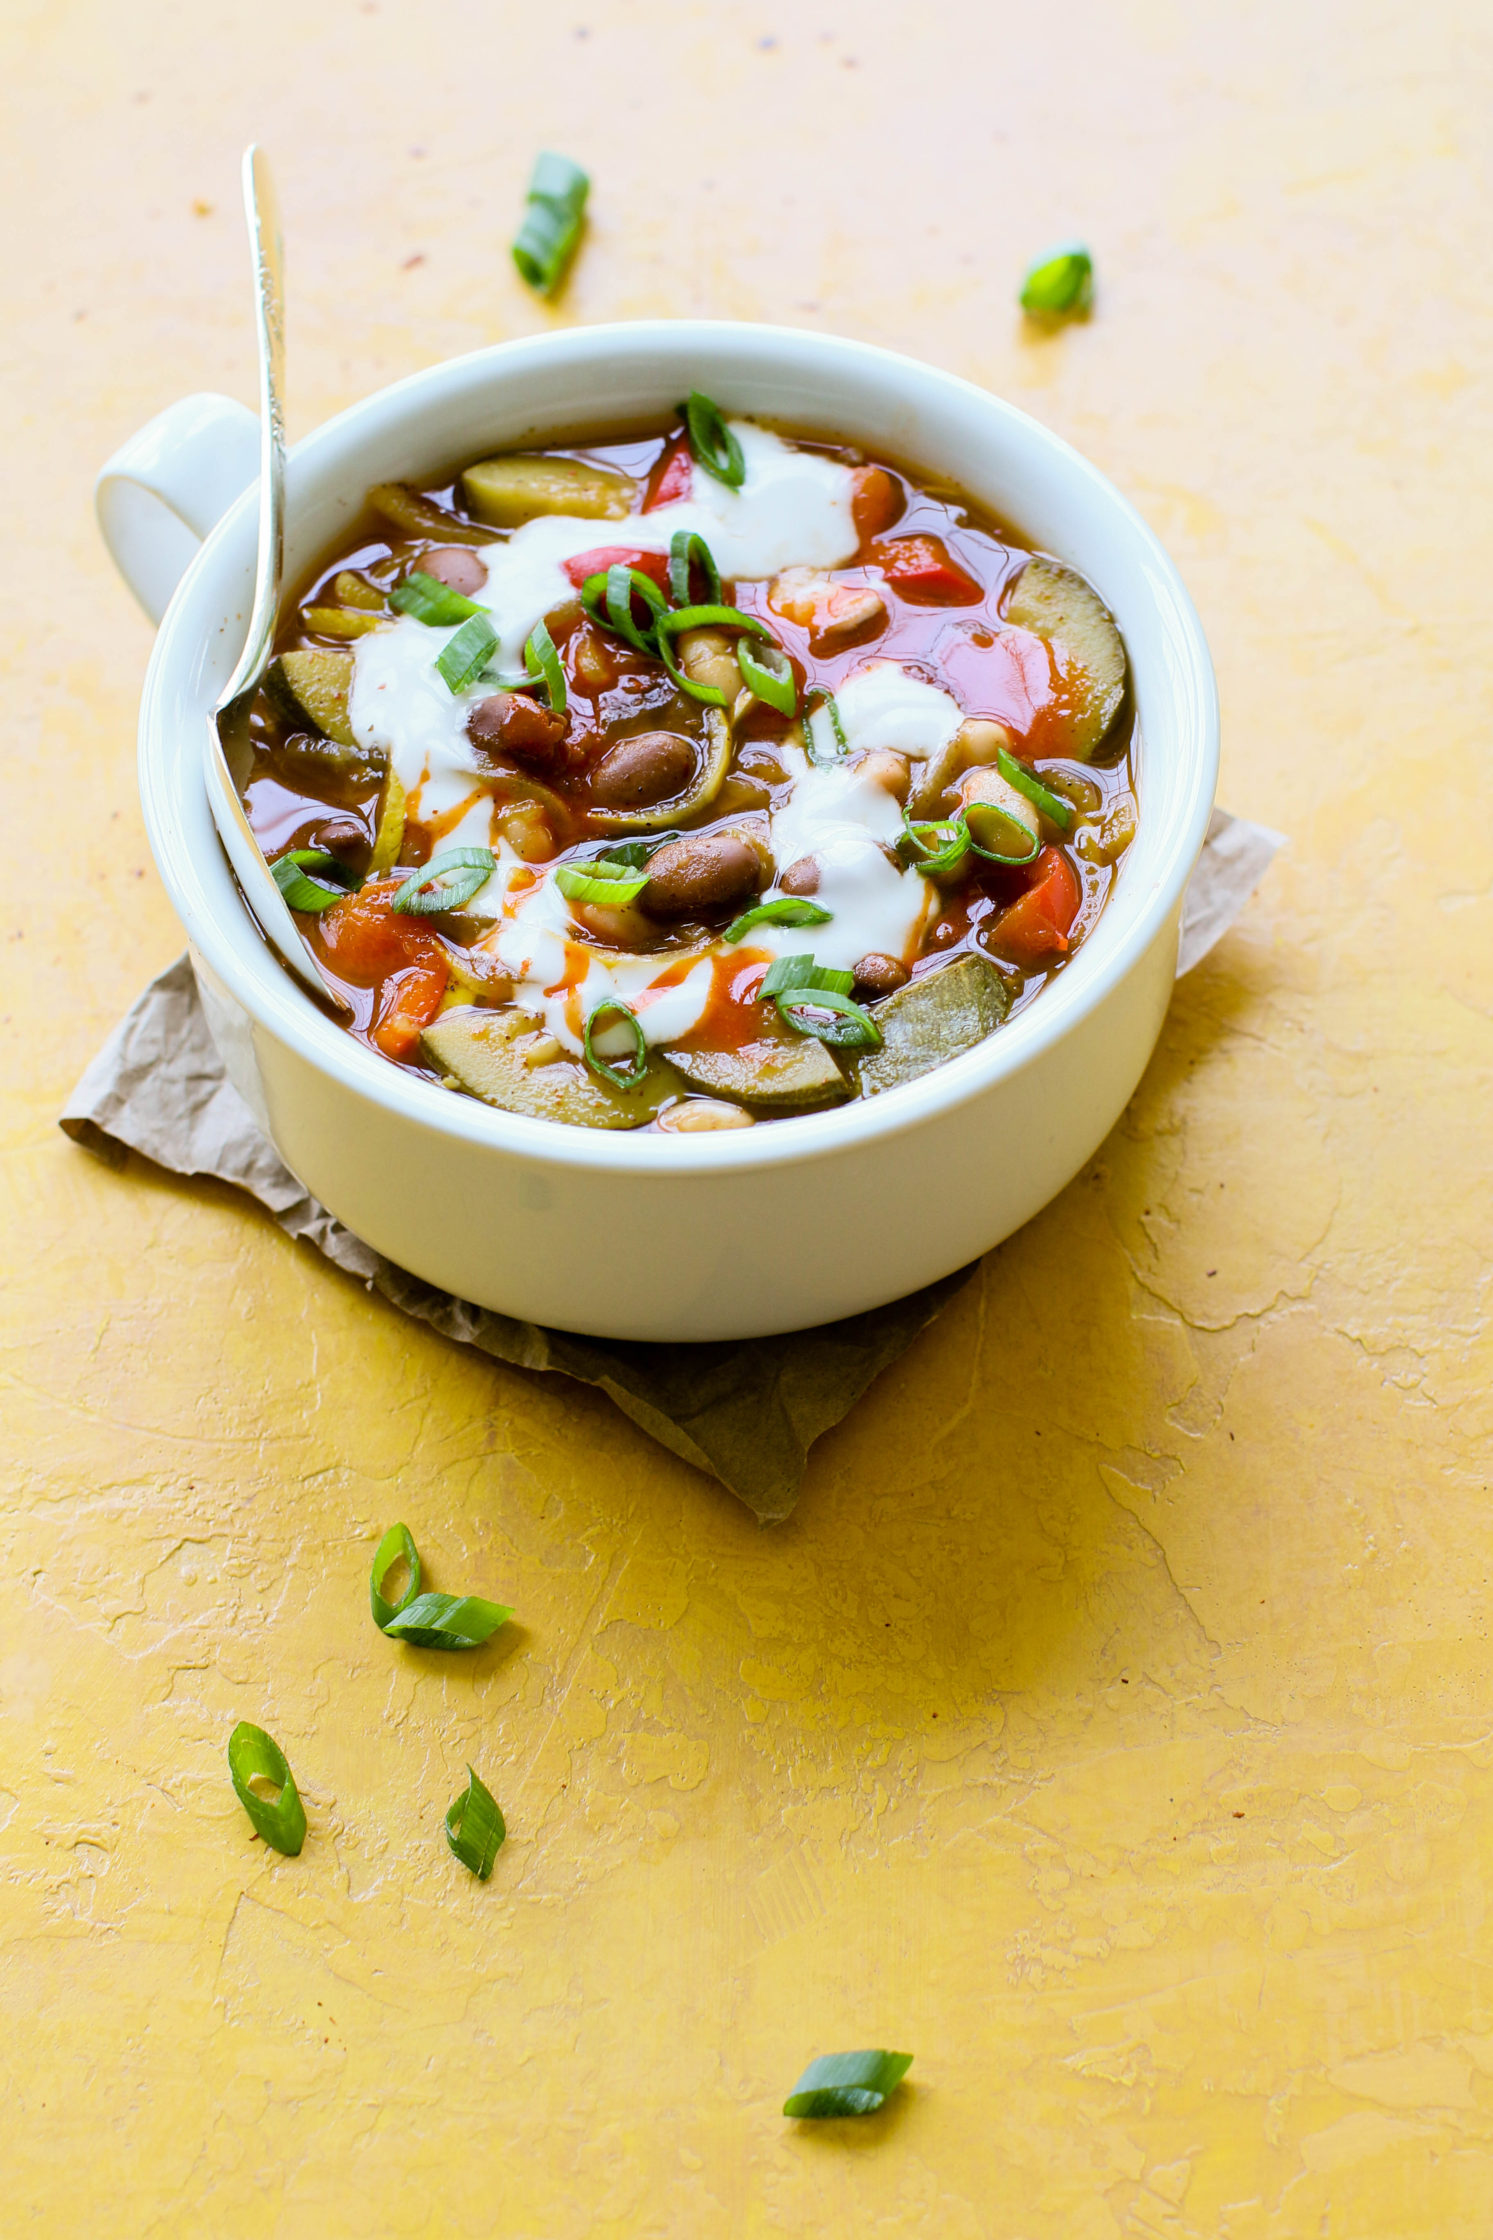 Summertime White Bean Chili by Flora & Vino